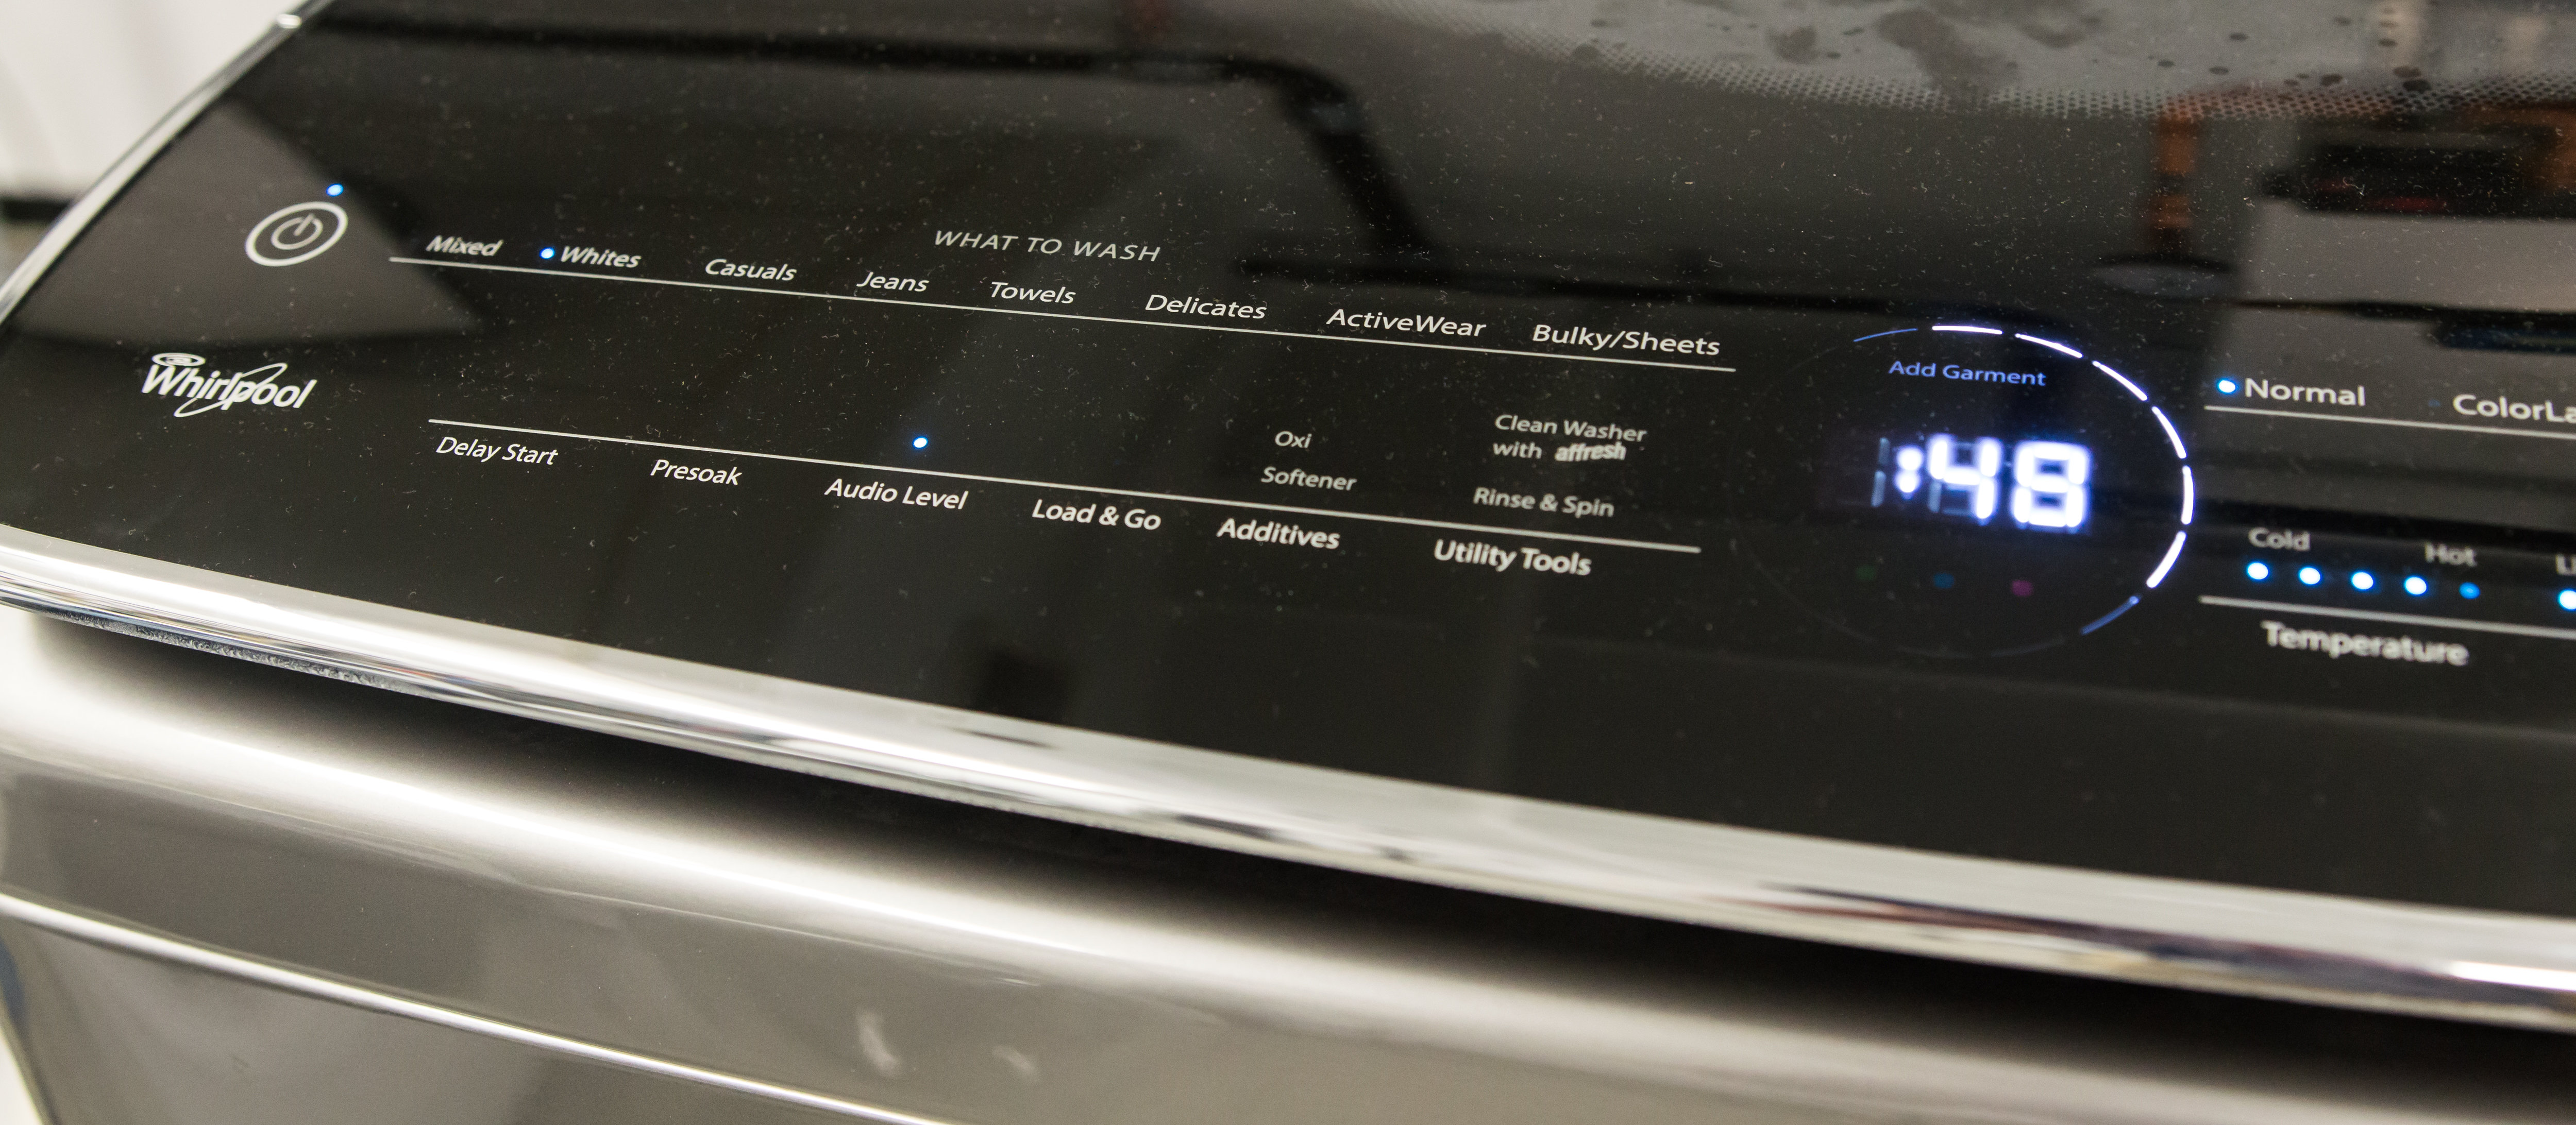 The What to Wash side of the interface.